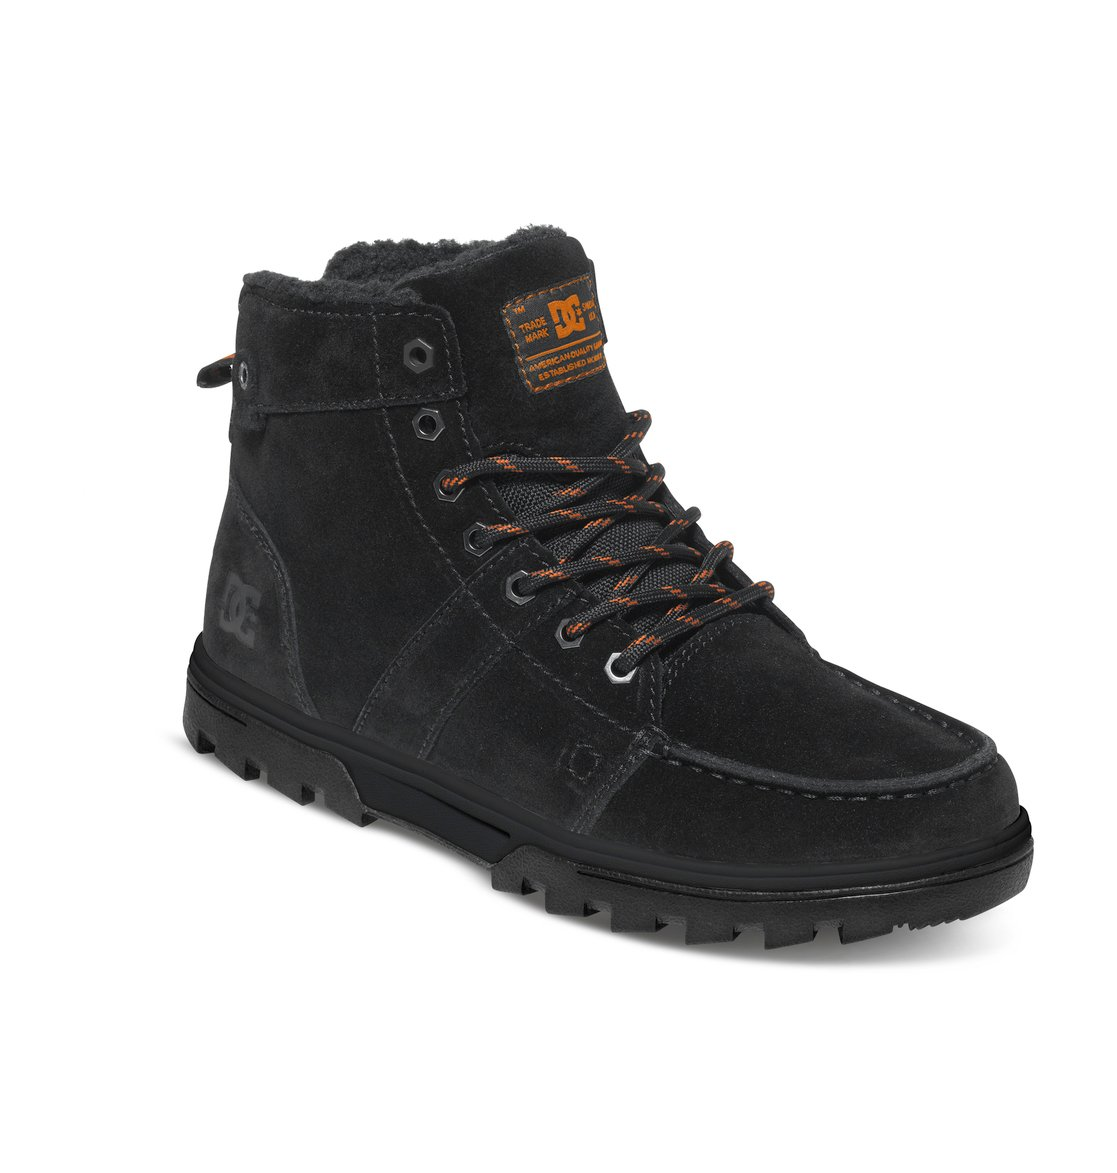 Men's Woodland Outdoor Winter Boots 303241 | DC Shoes